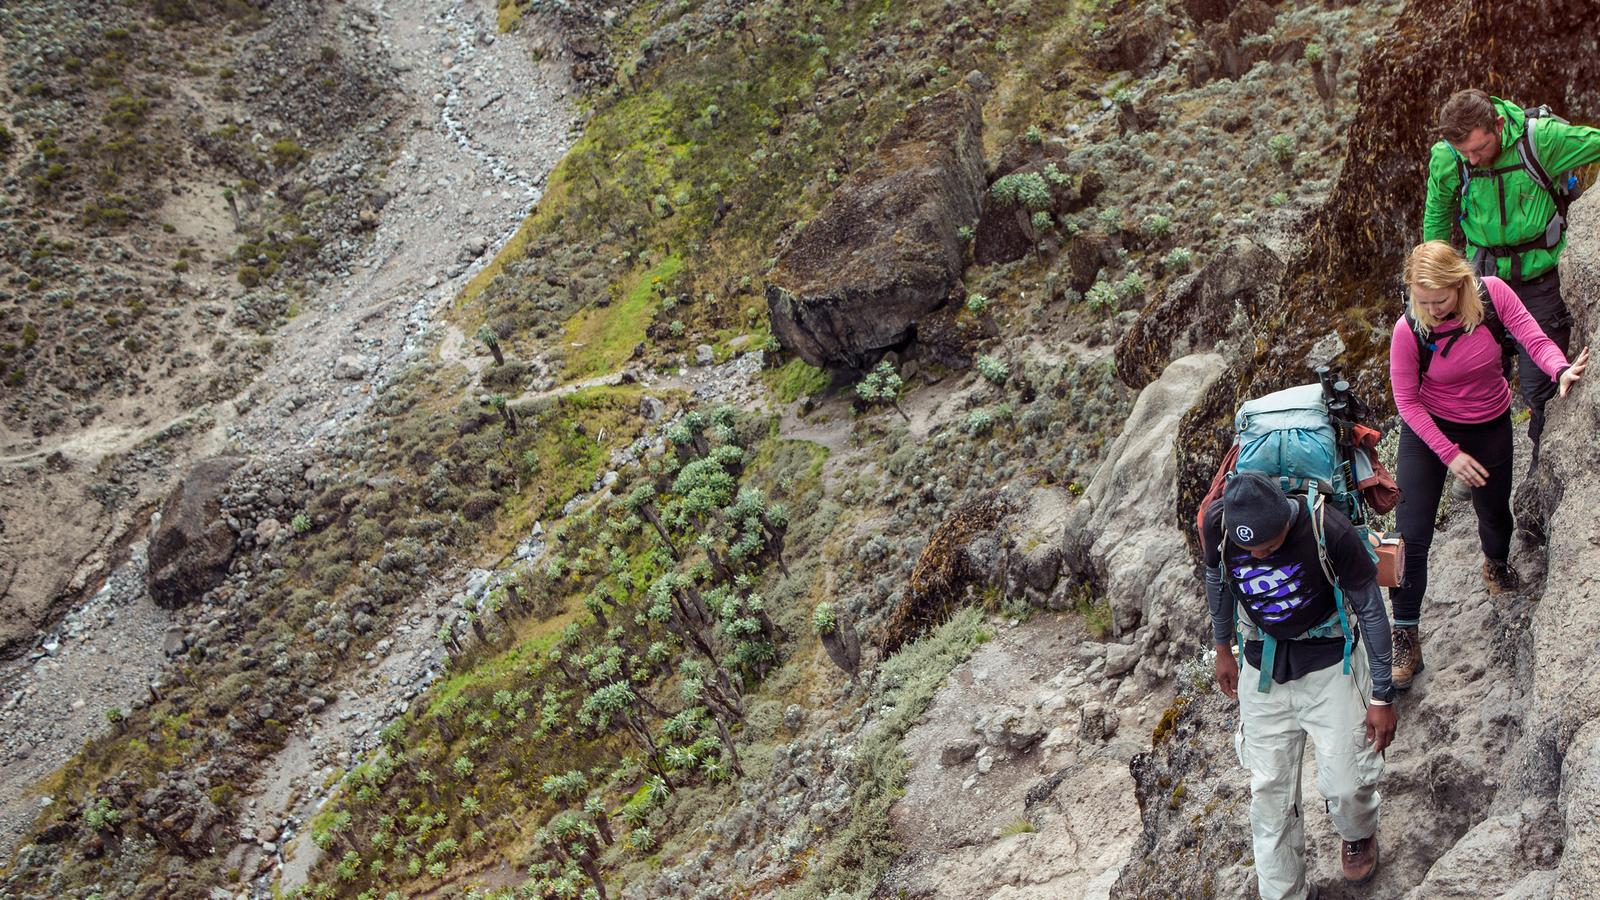 Travellers and their guide walking up the Barranco wall in Kilimanjaro, Tanzania